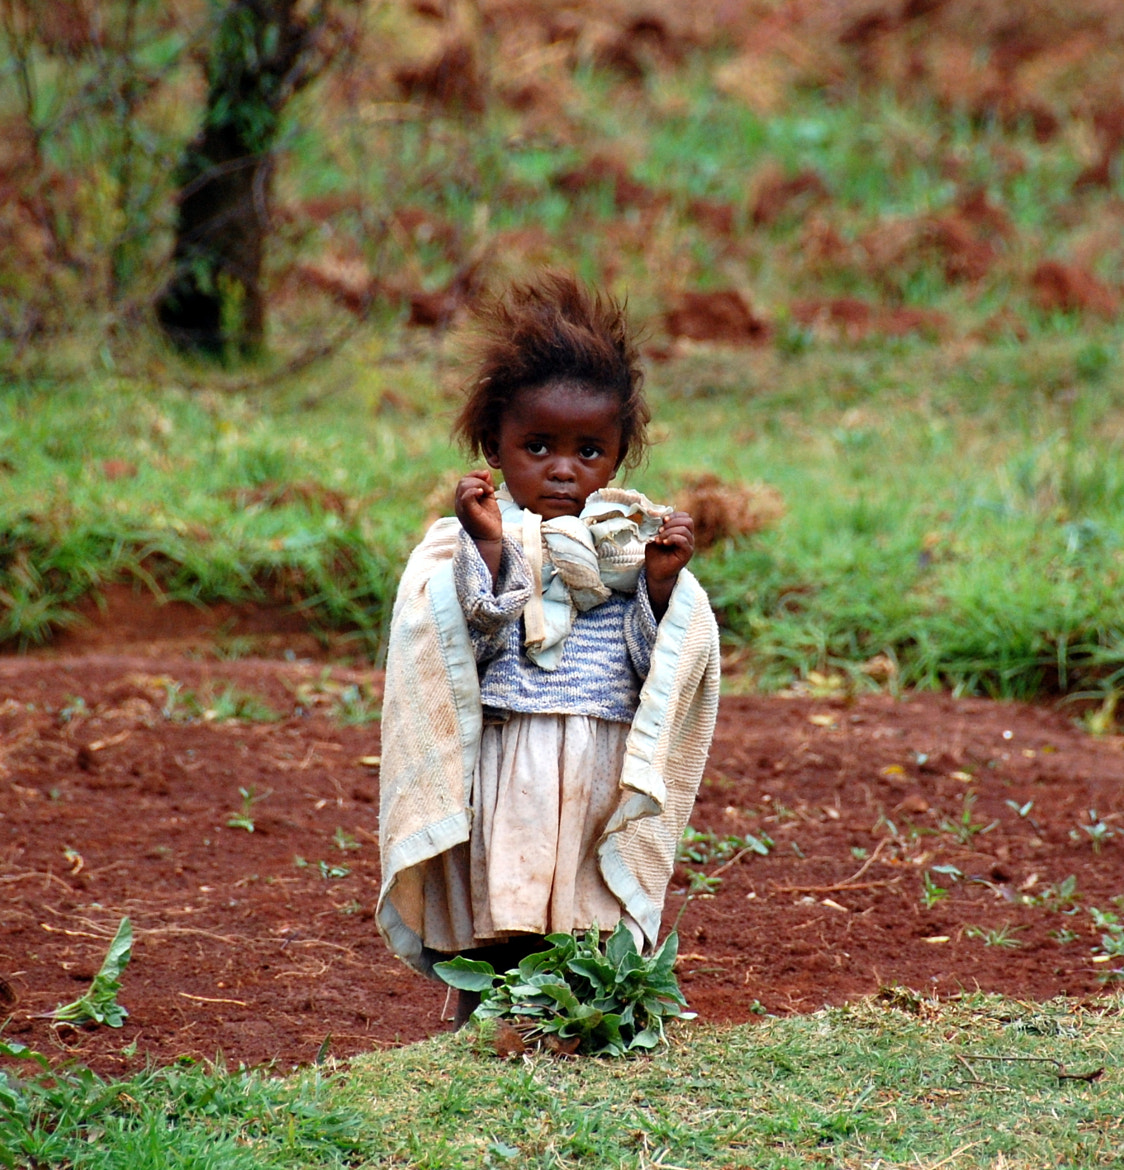 Photograph young south-african girl by Ruud Eelderink on 500px